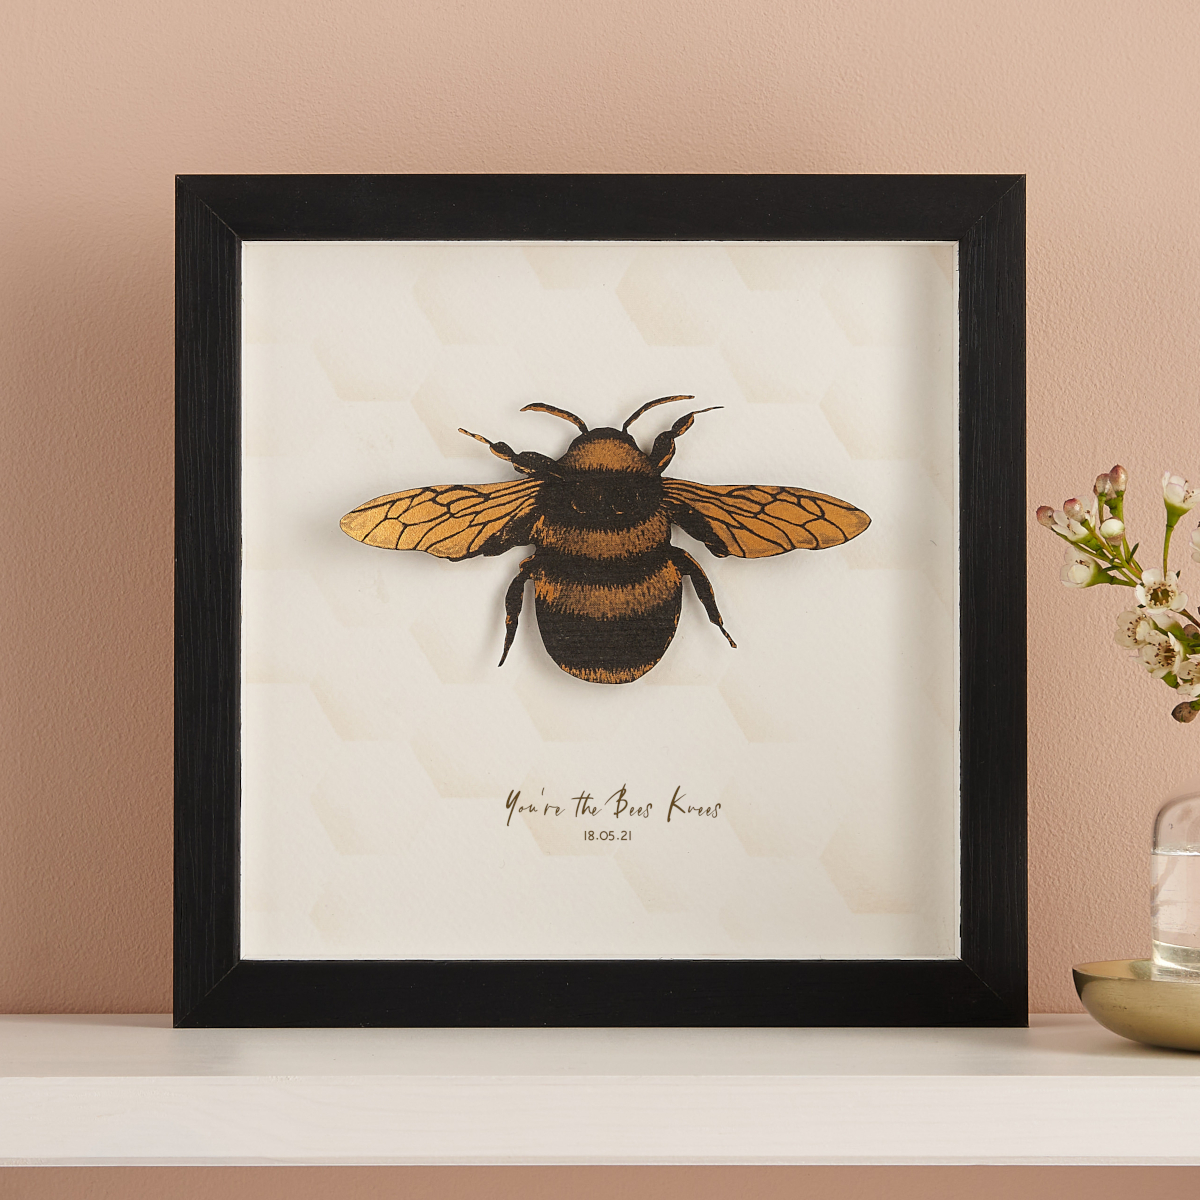 Papercut You're the Bees Knees framed art print, for Save the Bees promotion